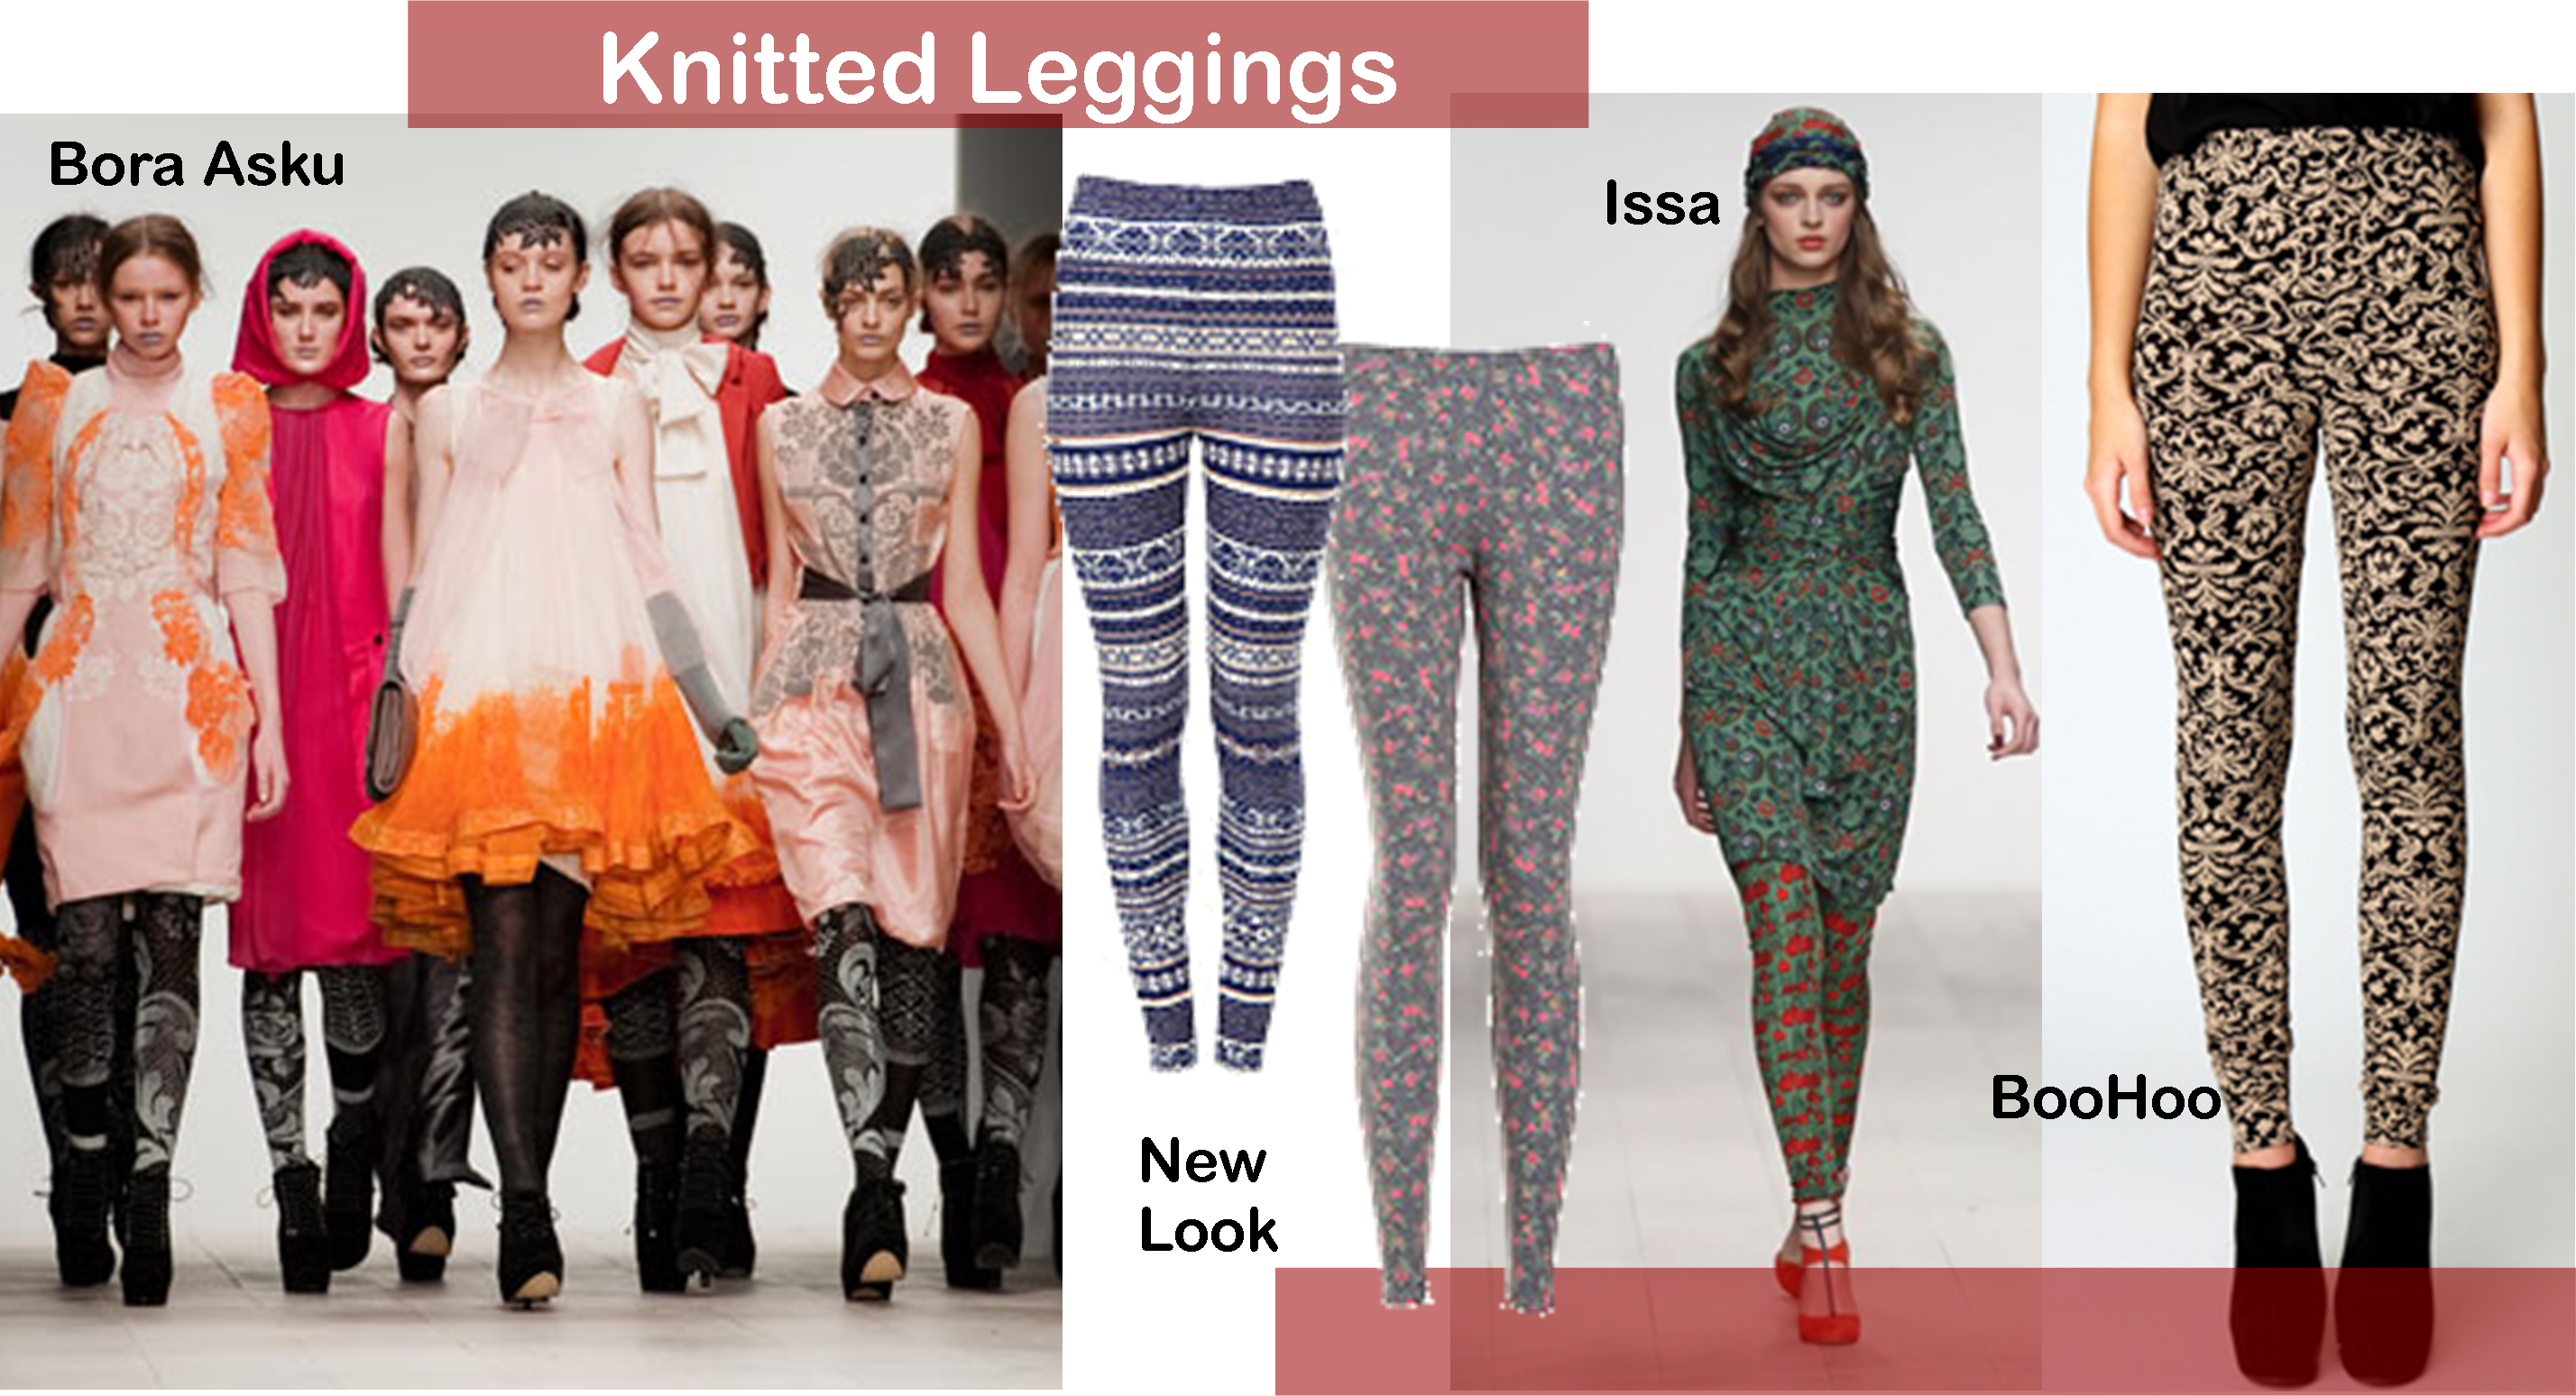 Fashion for frosty mornings: Knitted leggings